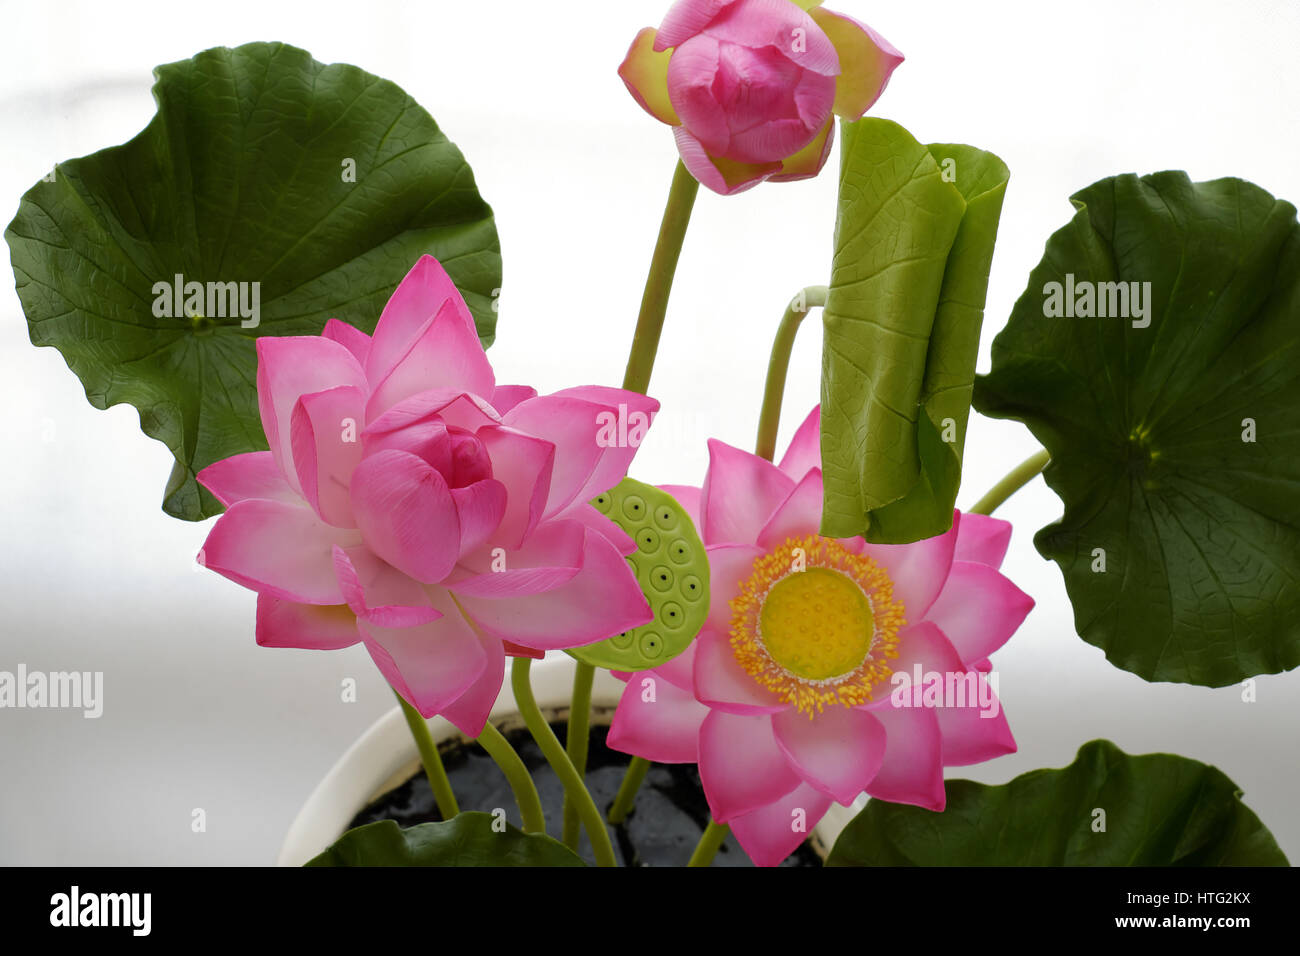 Artificial Flower Handmade Clay Lotus Flower With Green Leaf Pink